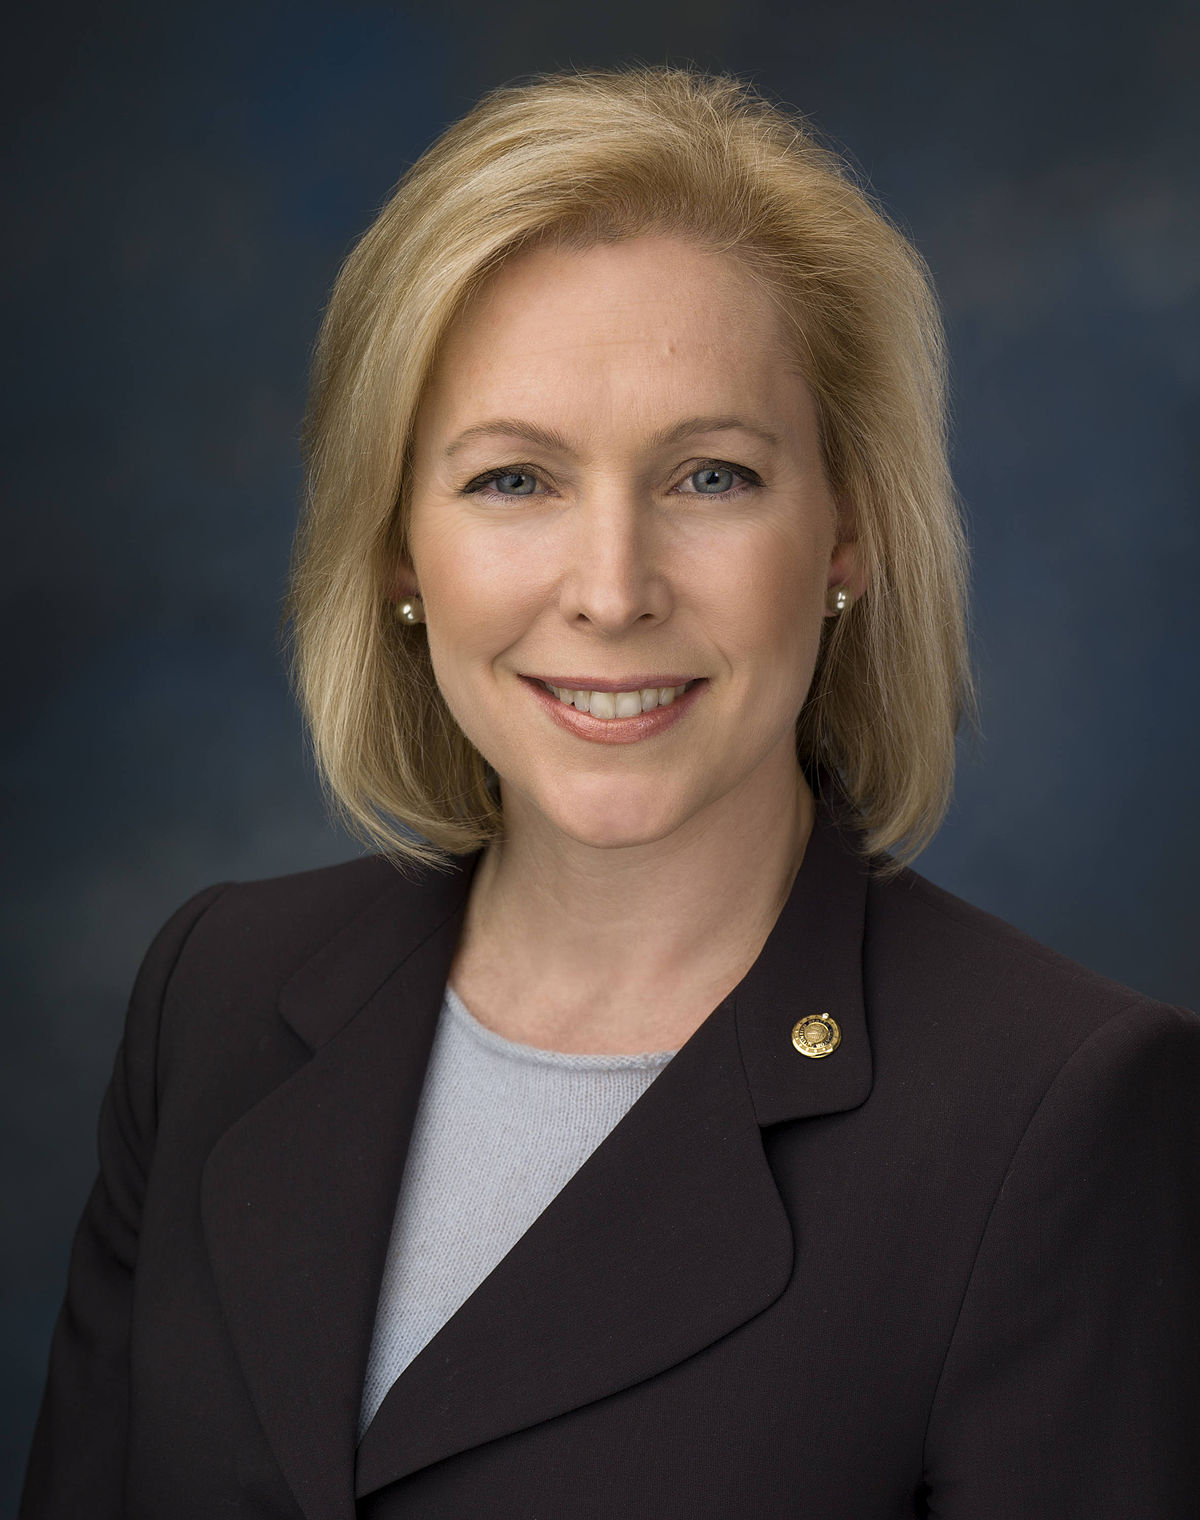 Send a fax to New York Democratic Senator Kirsten Gillibrand